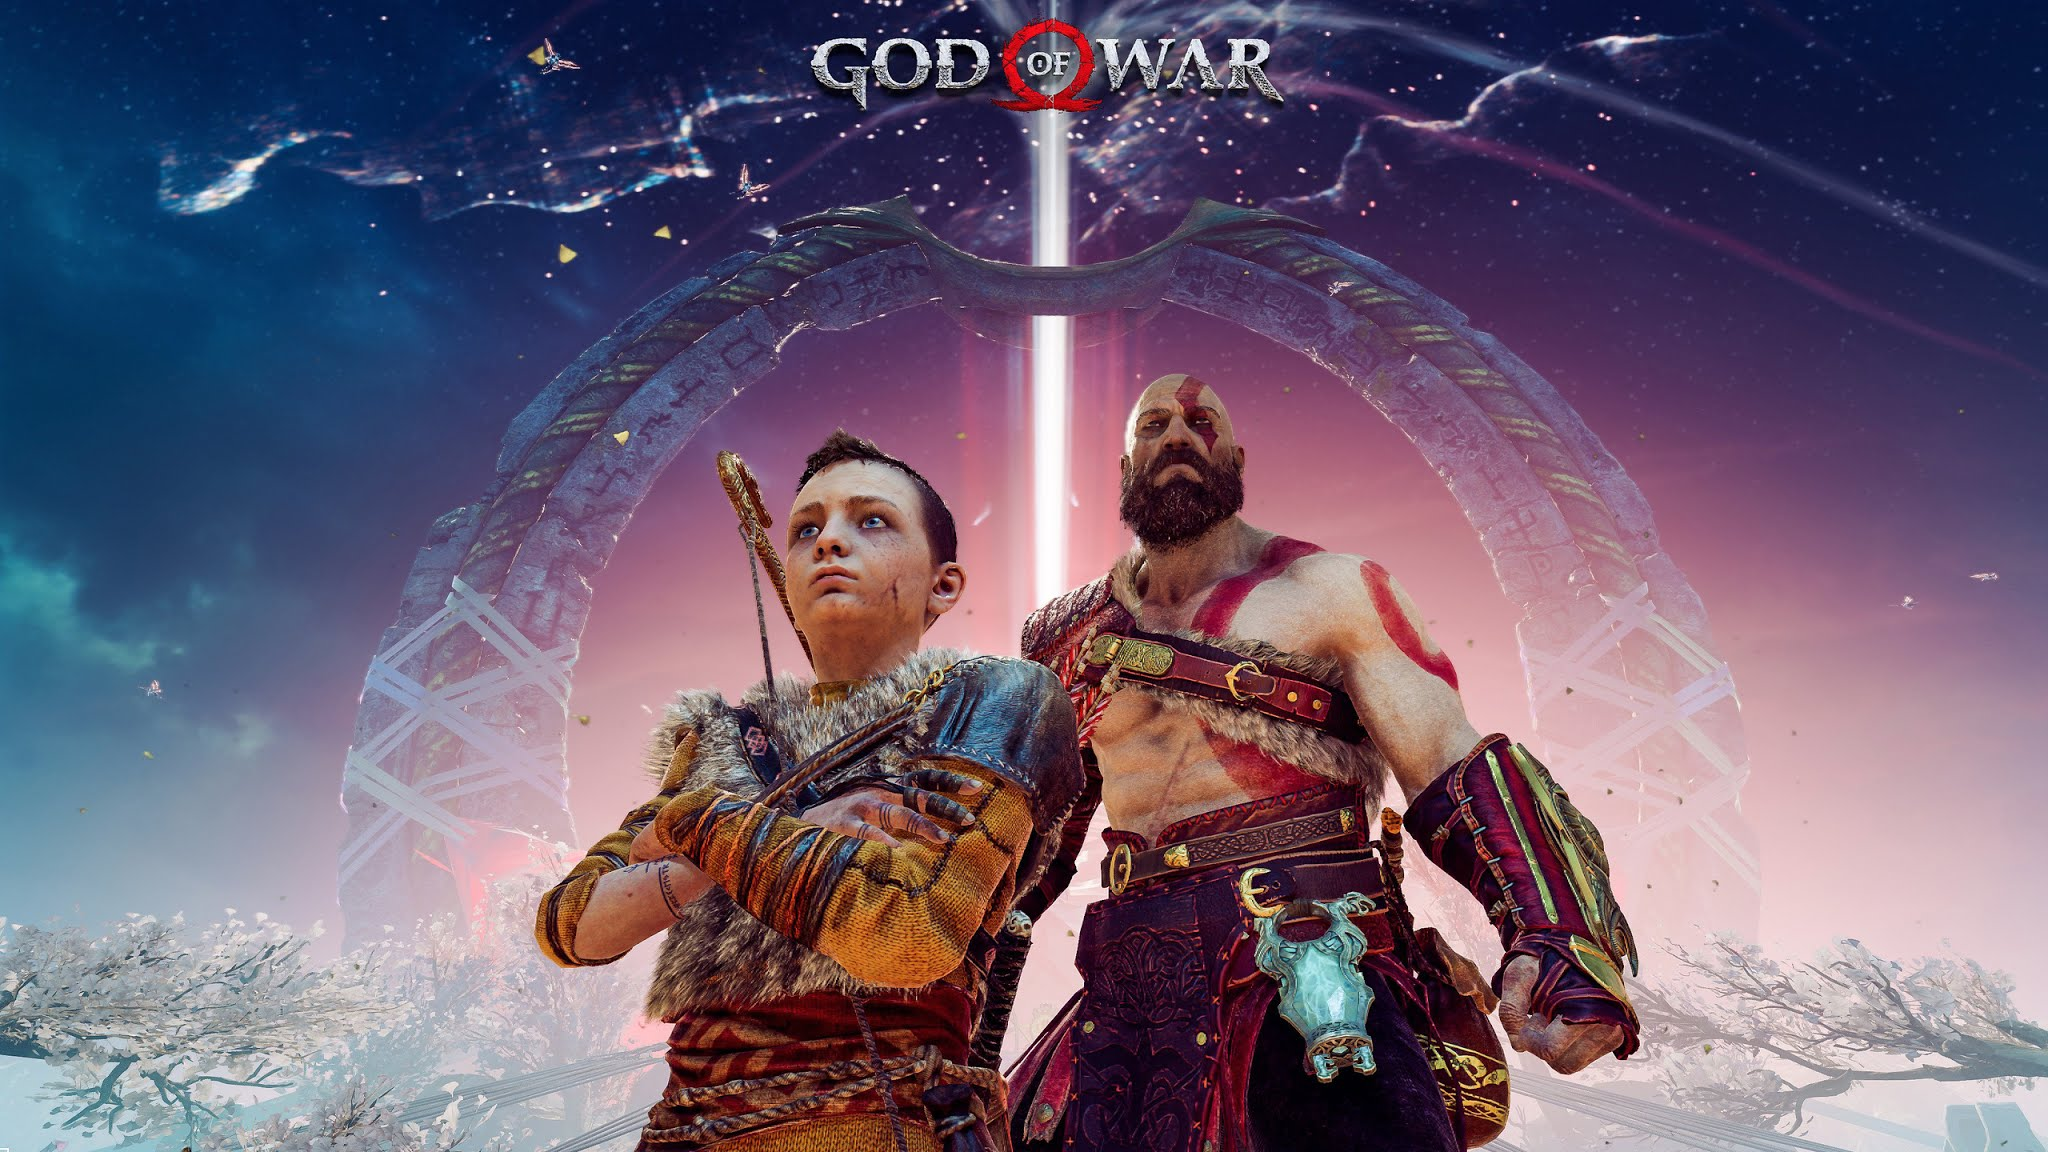 God Of War 4 Fan Art Game